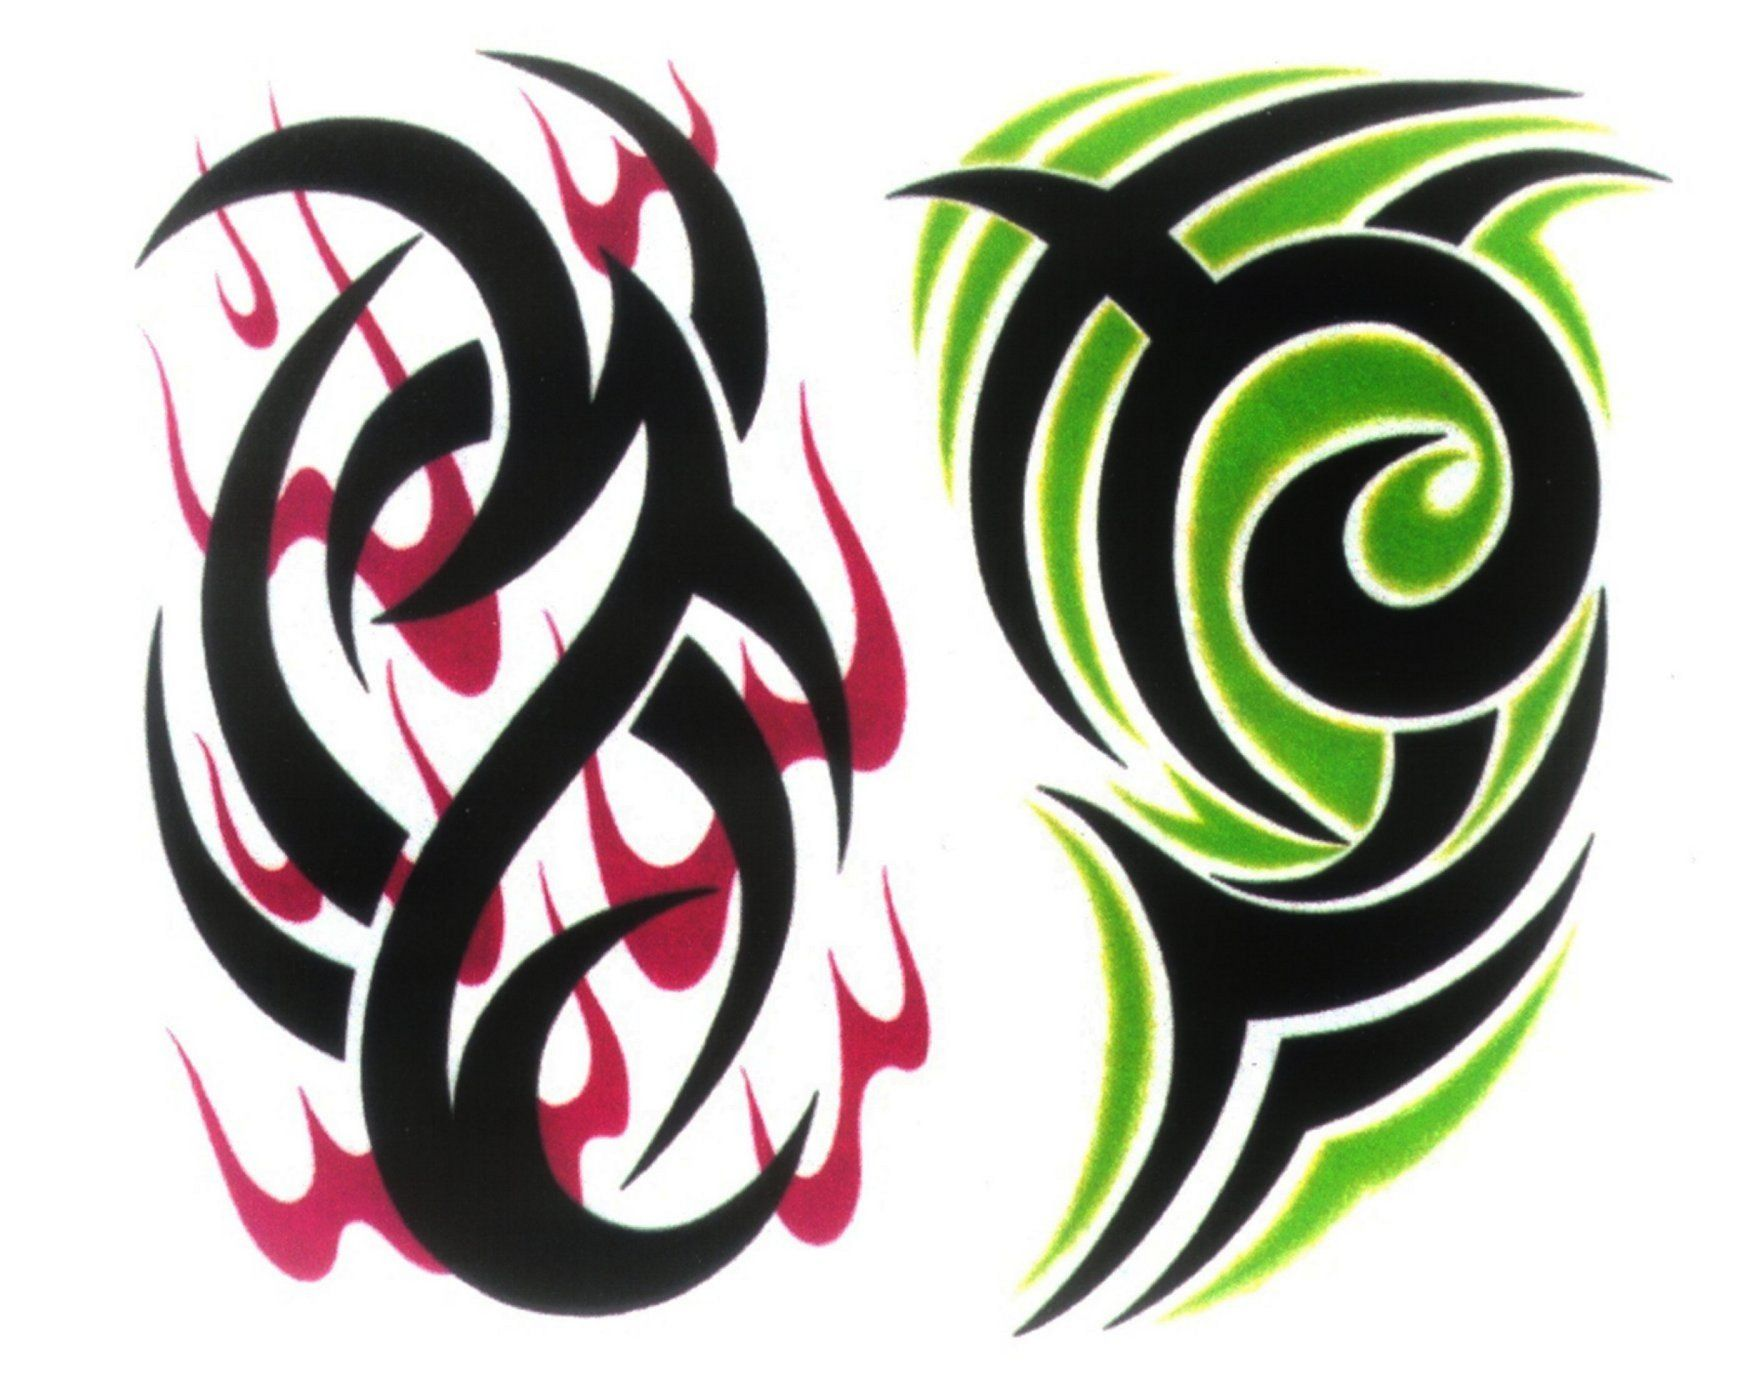 Color Tribal Designs Google Search Free Tattoo Designs Free Tattoo Tattoo Designs